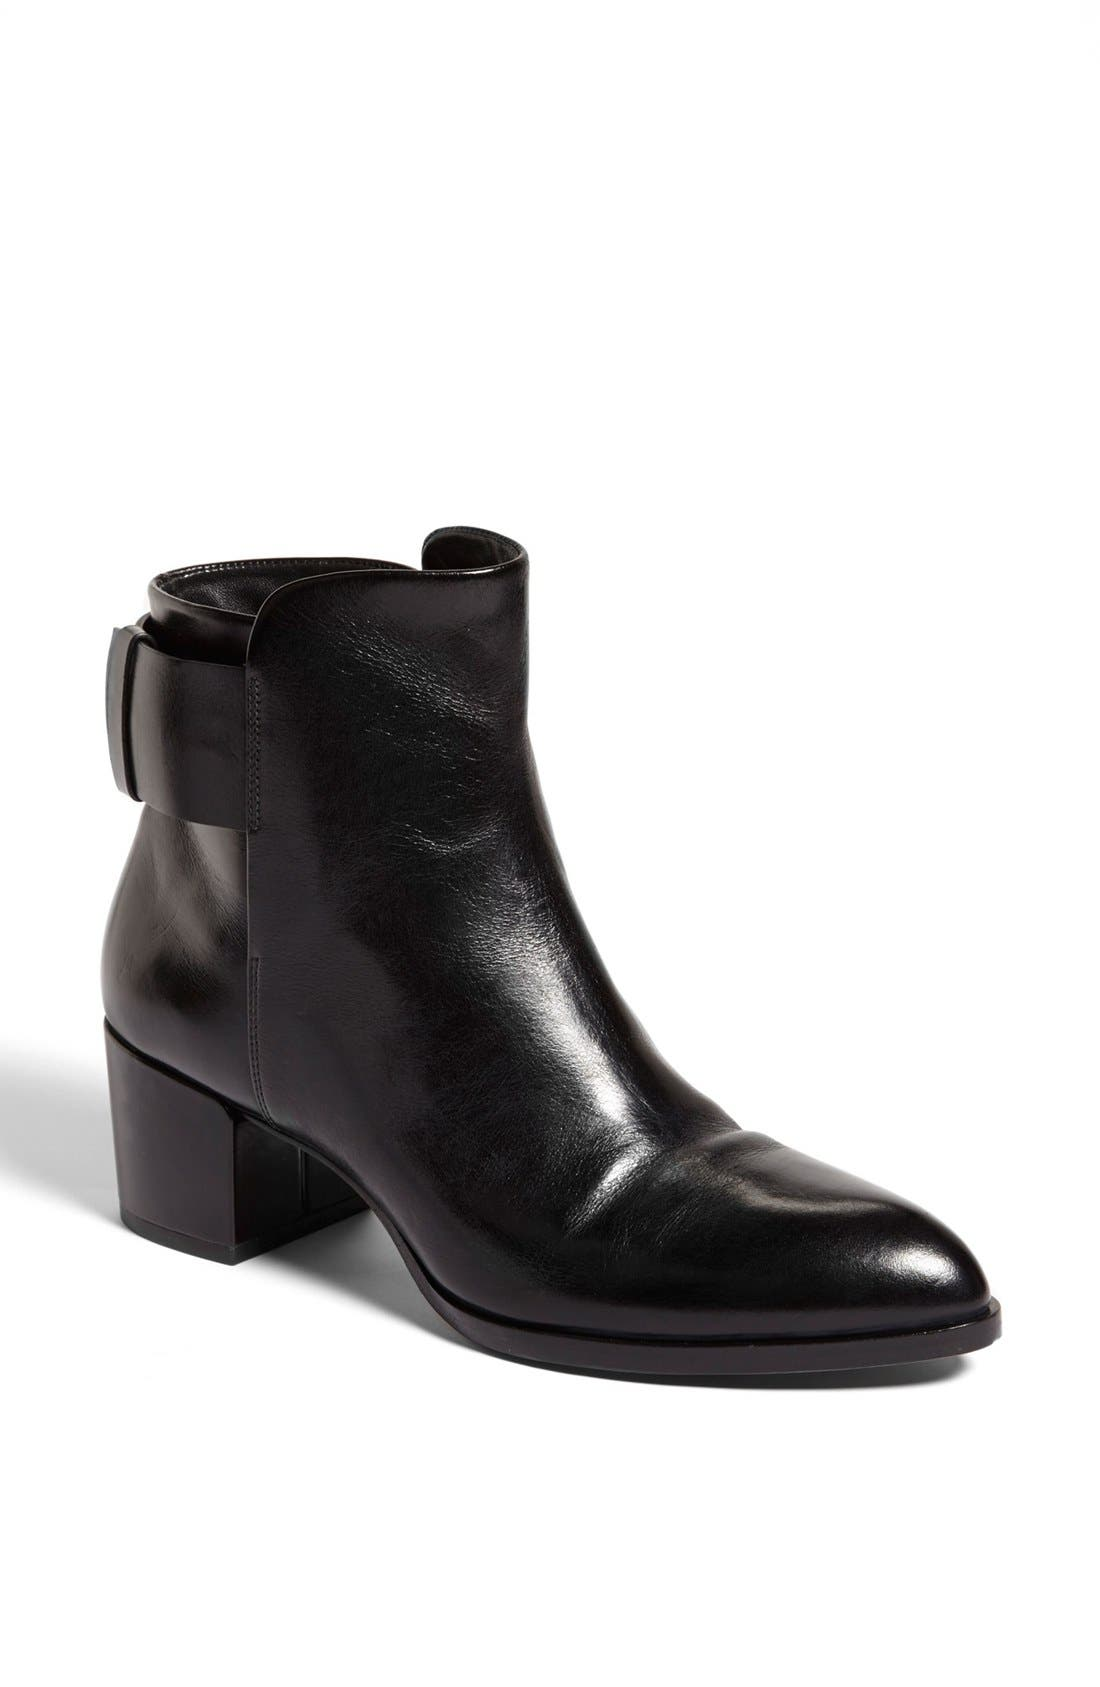 Main Image - Alexander Wang 'Anja' Calfskin Leather Ankle Boot